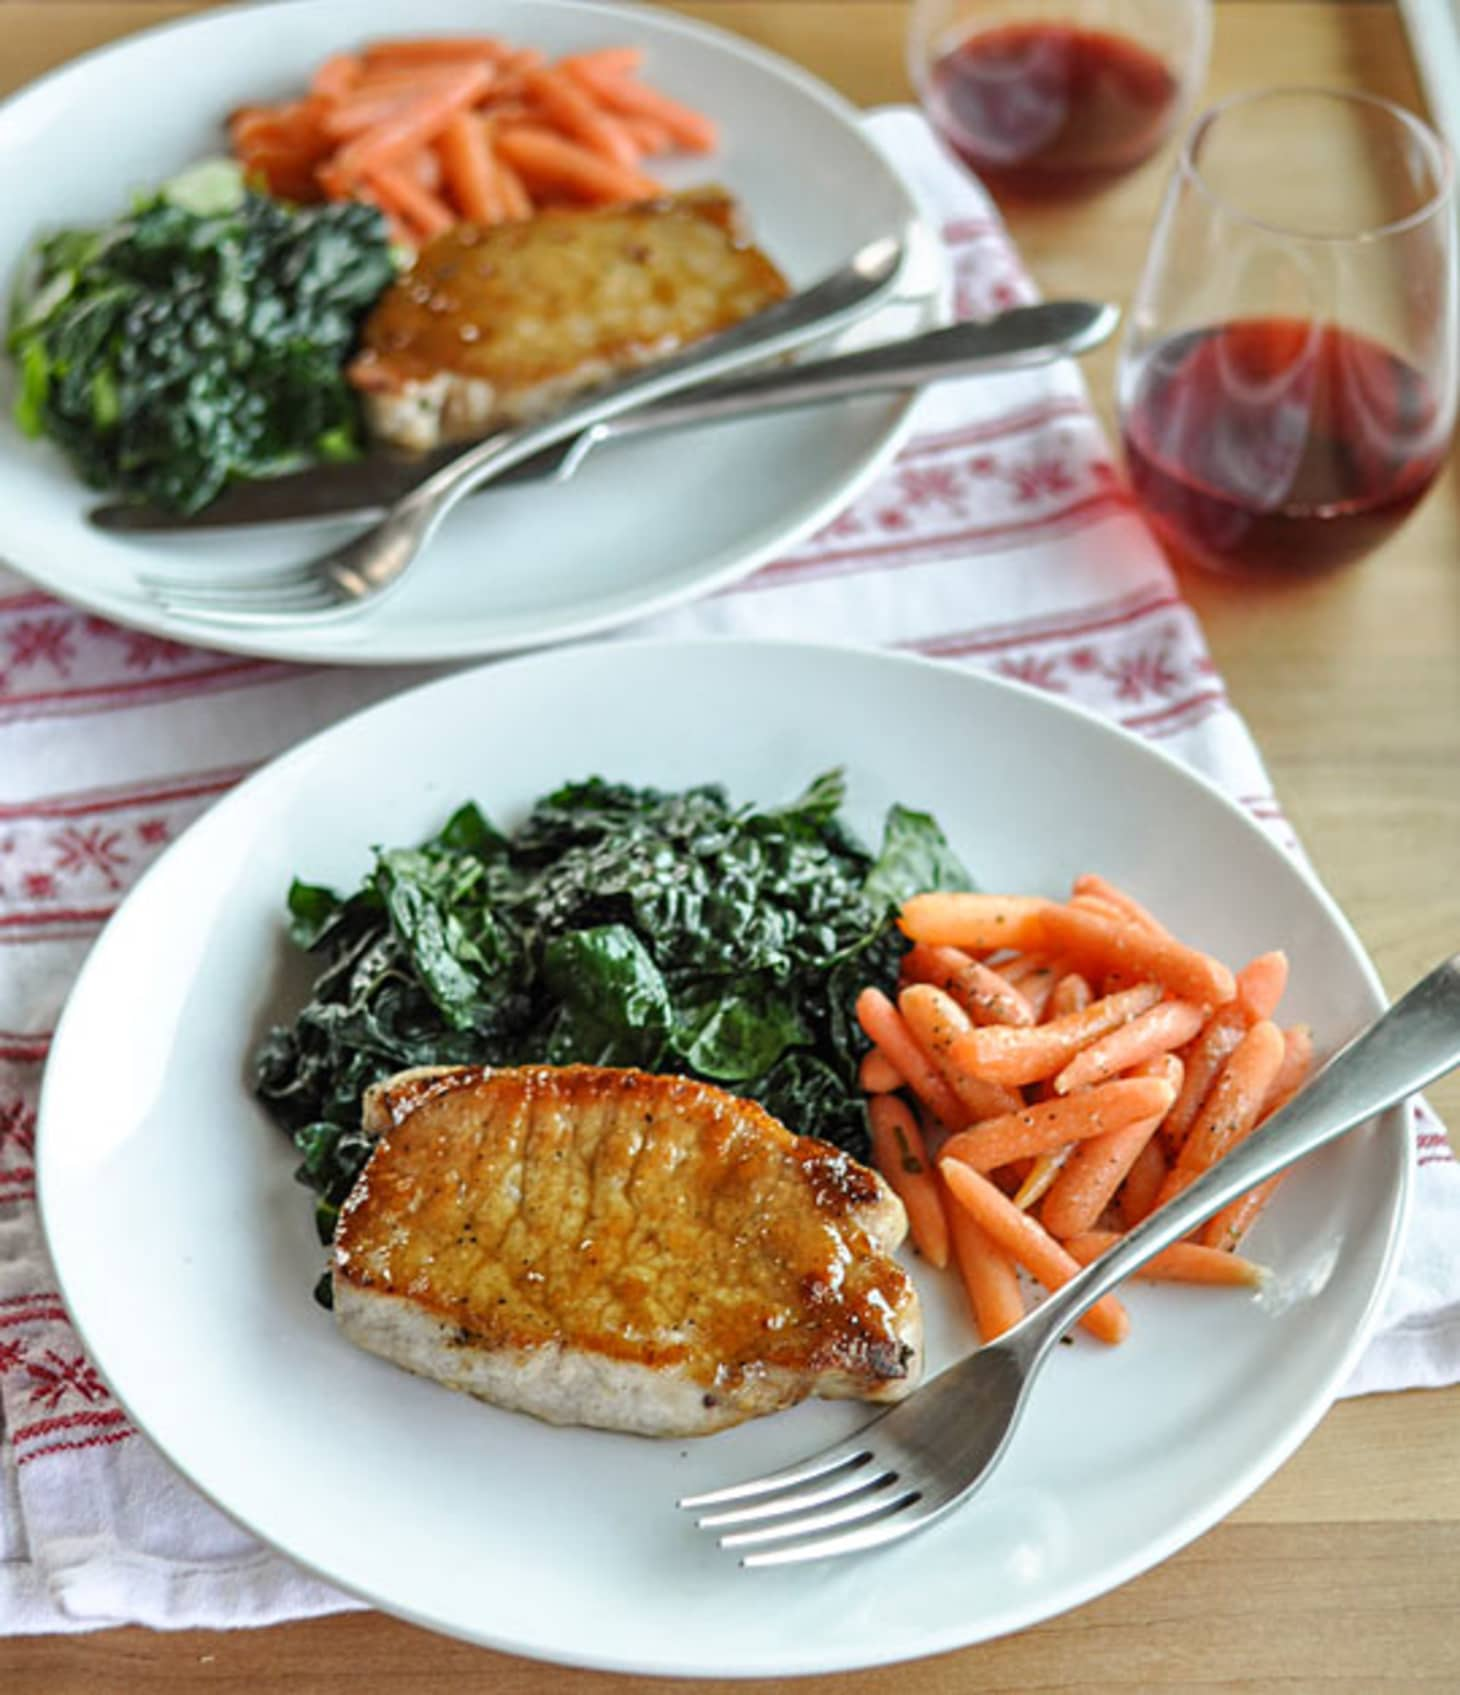 64 Easy Dinner Recipes For Two: Dinner-for-Two Recipe: Sage-Brined Pork Chops With Brown